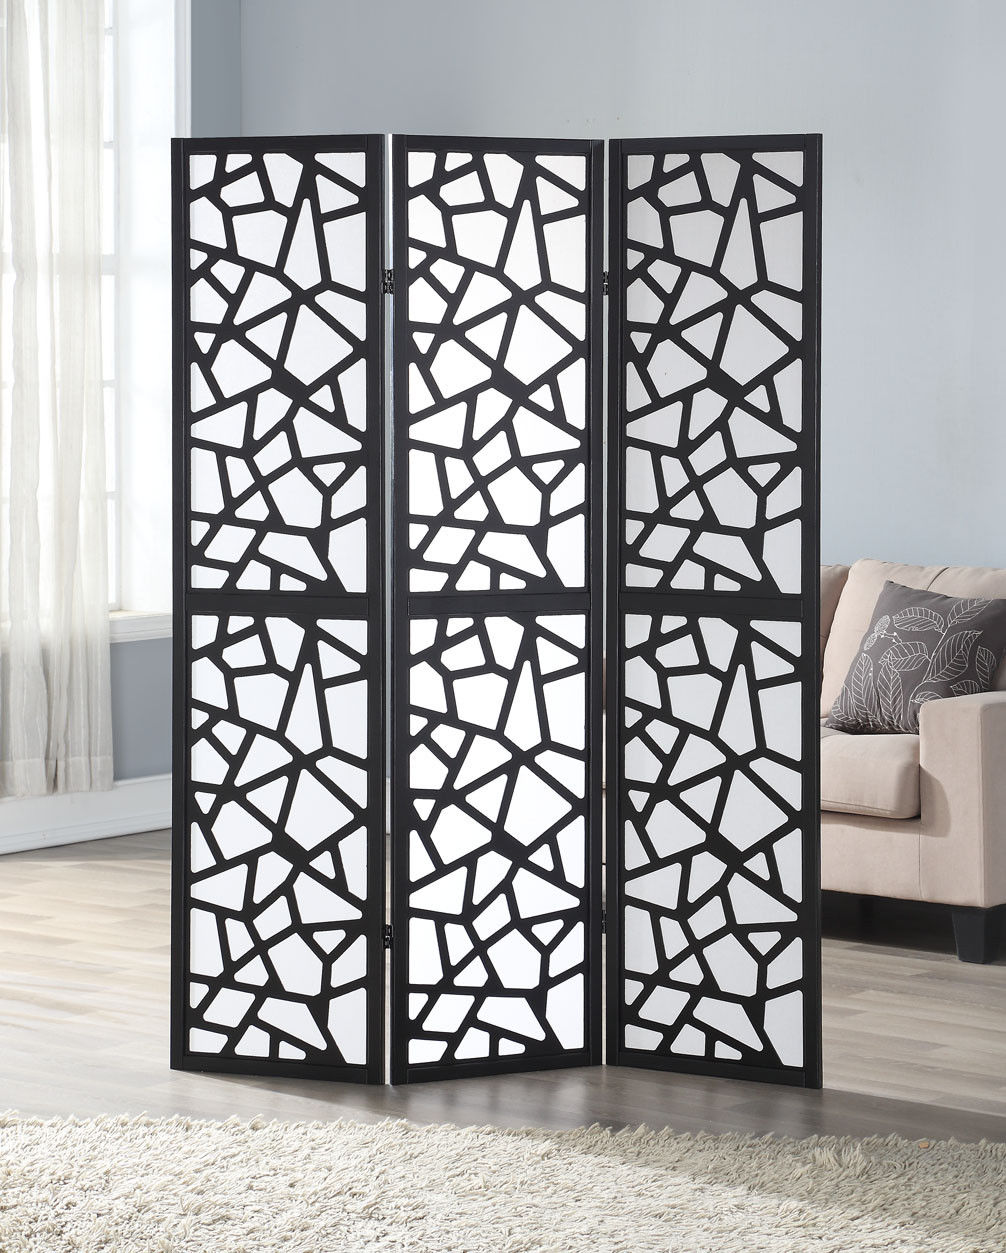 3 Panel Folding Room Divider Privacy Shoji Screen Pine Wood Frame Black